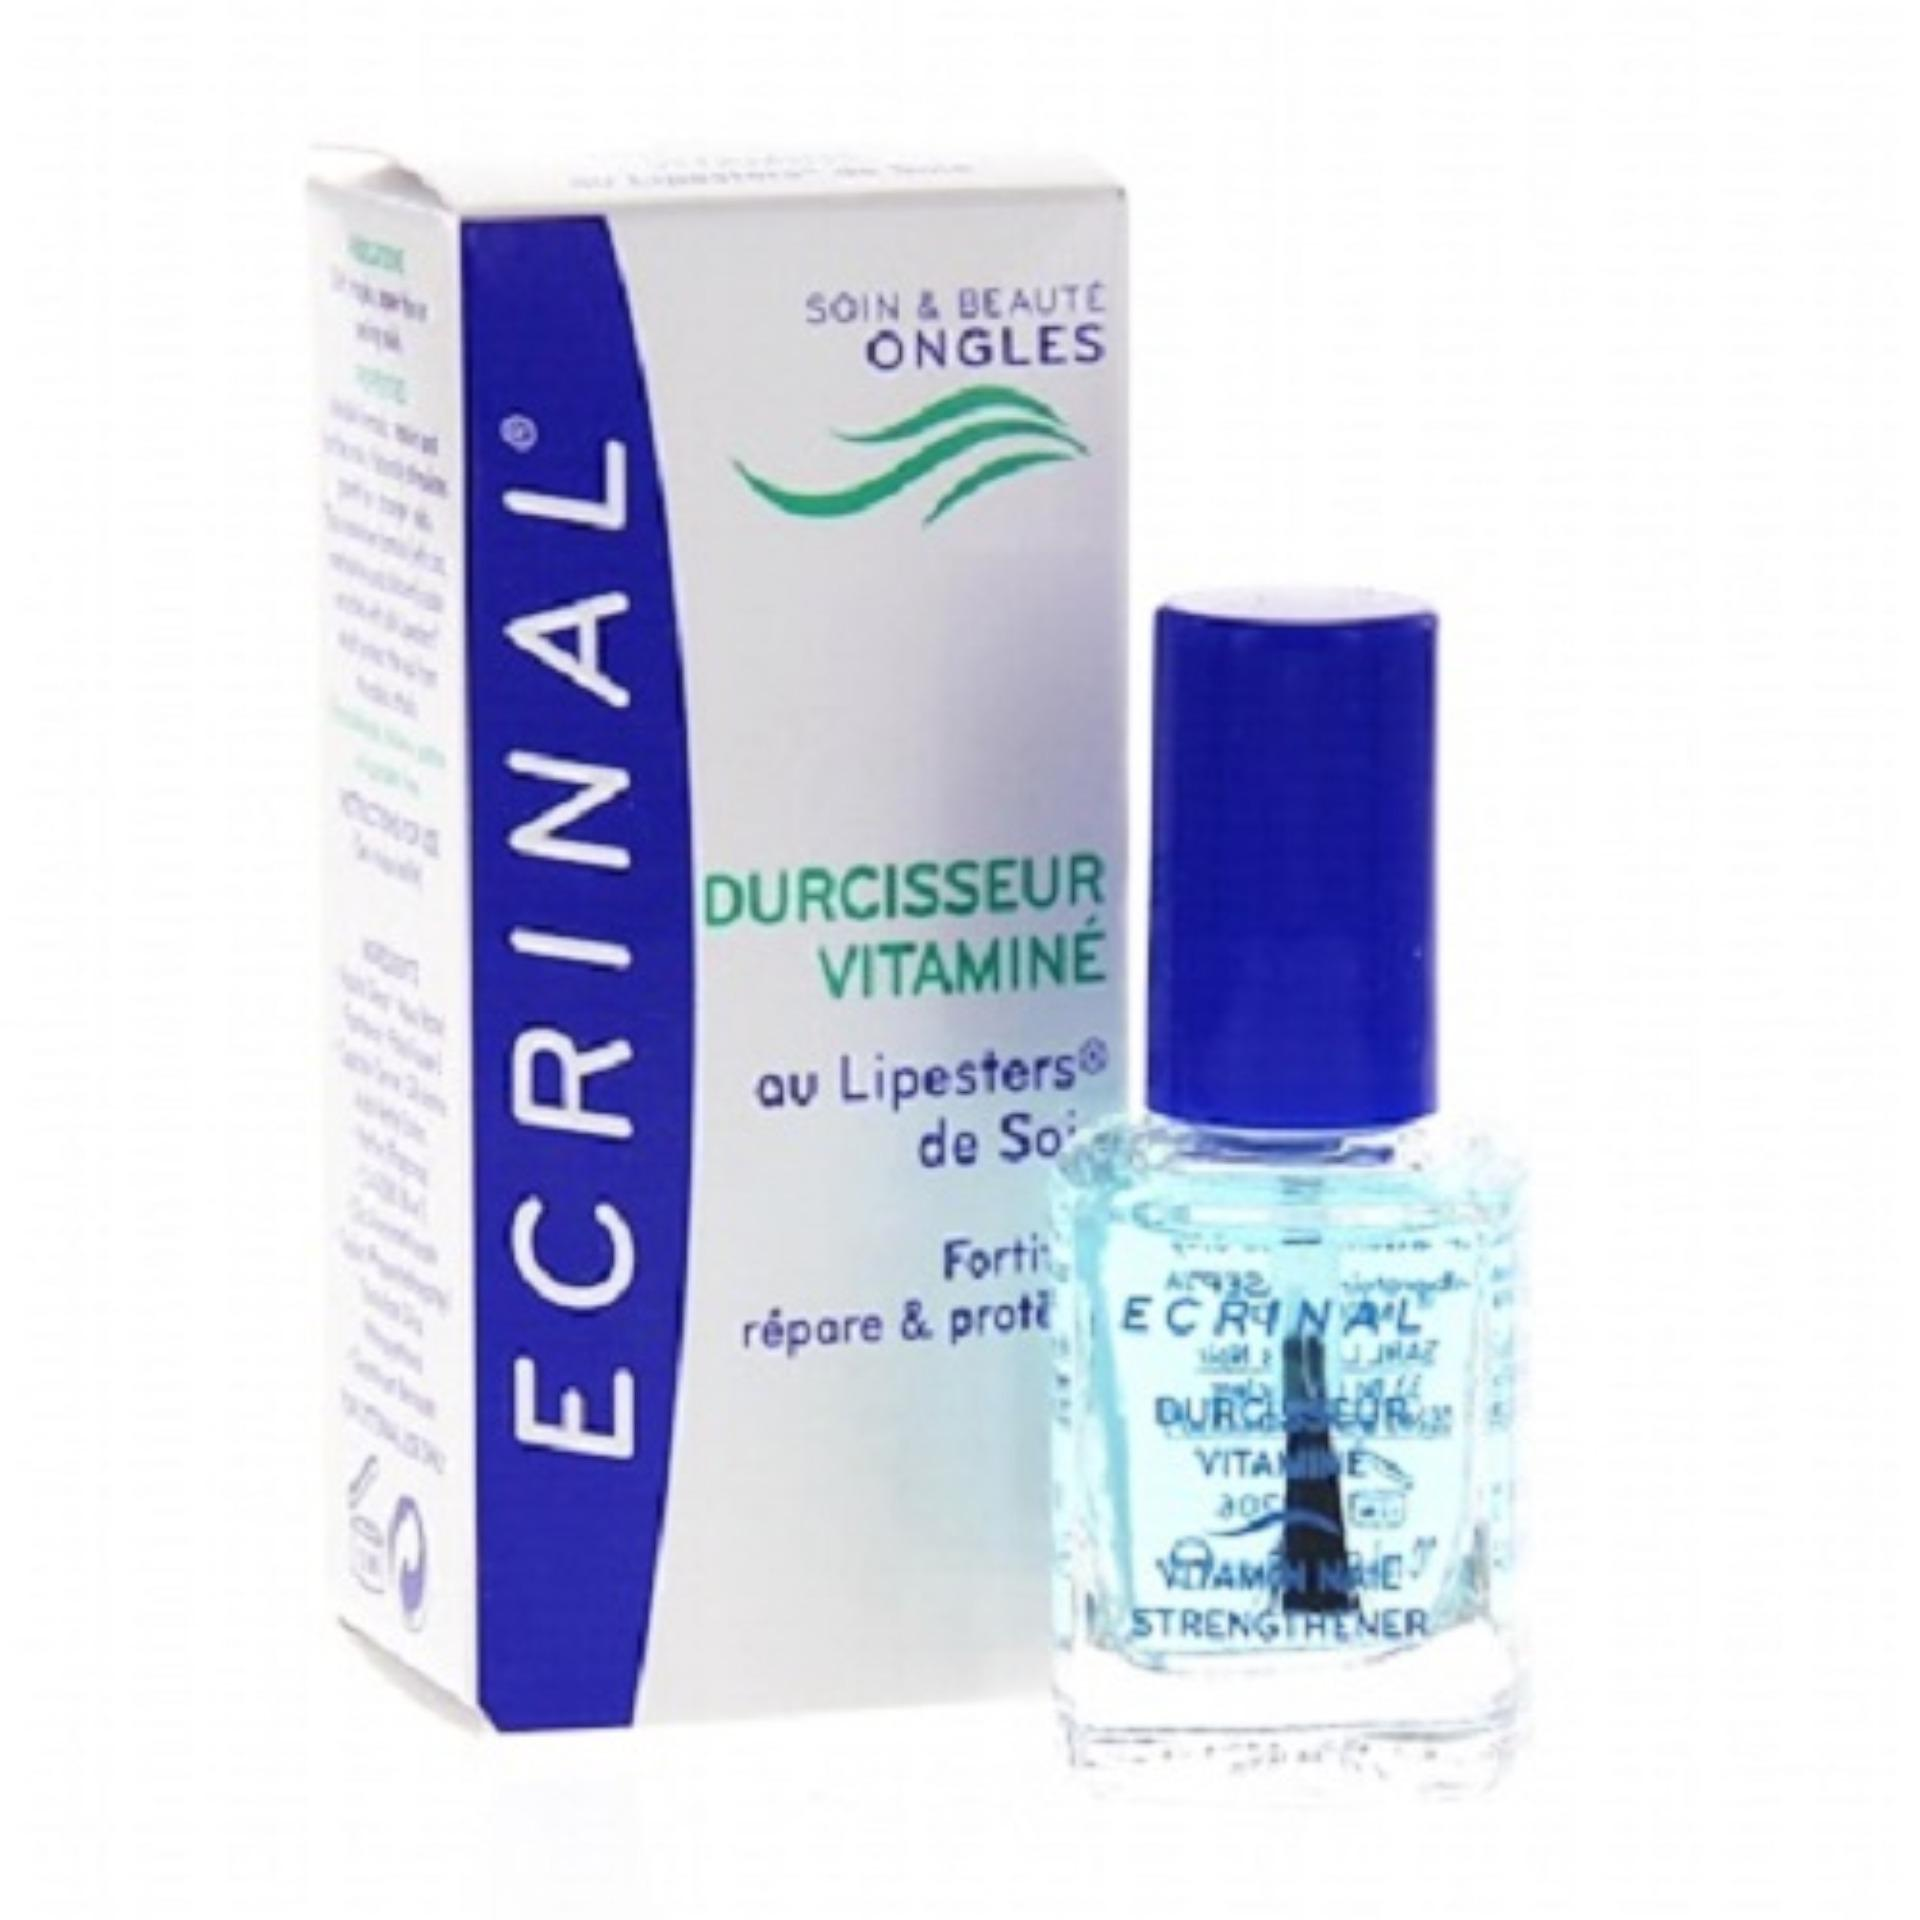 Ecrinal Vitamin Nail Strengthener By Johnnybeautyandnails.